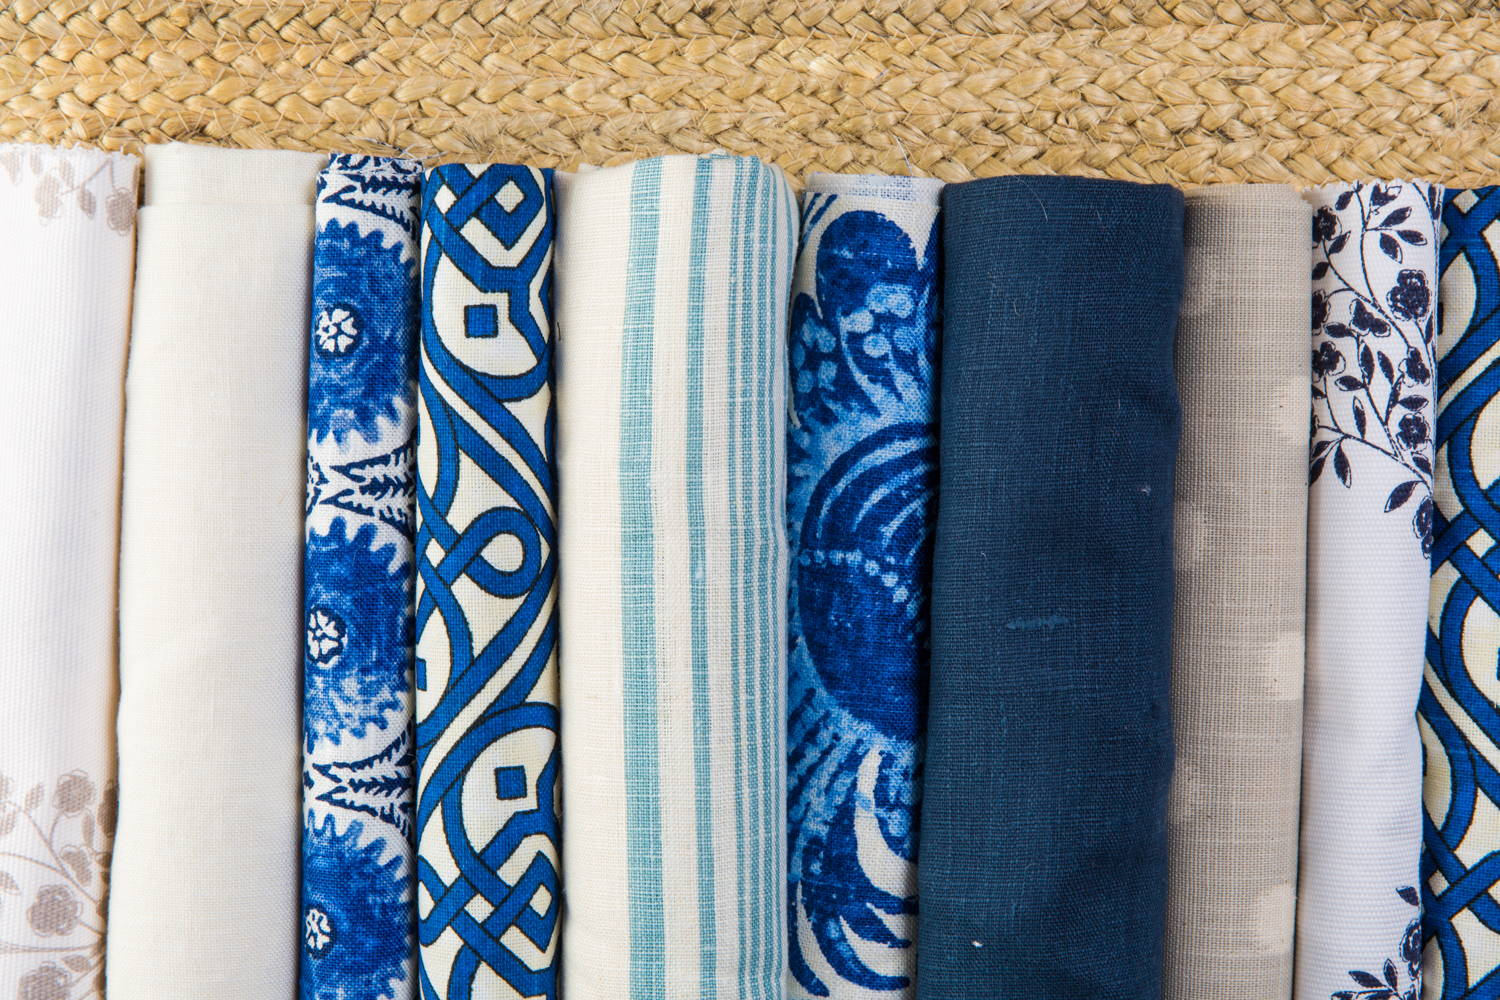 Rainsford Company Blue and White Collection